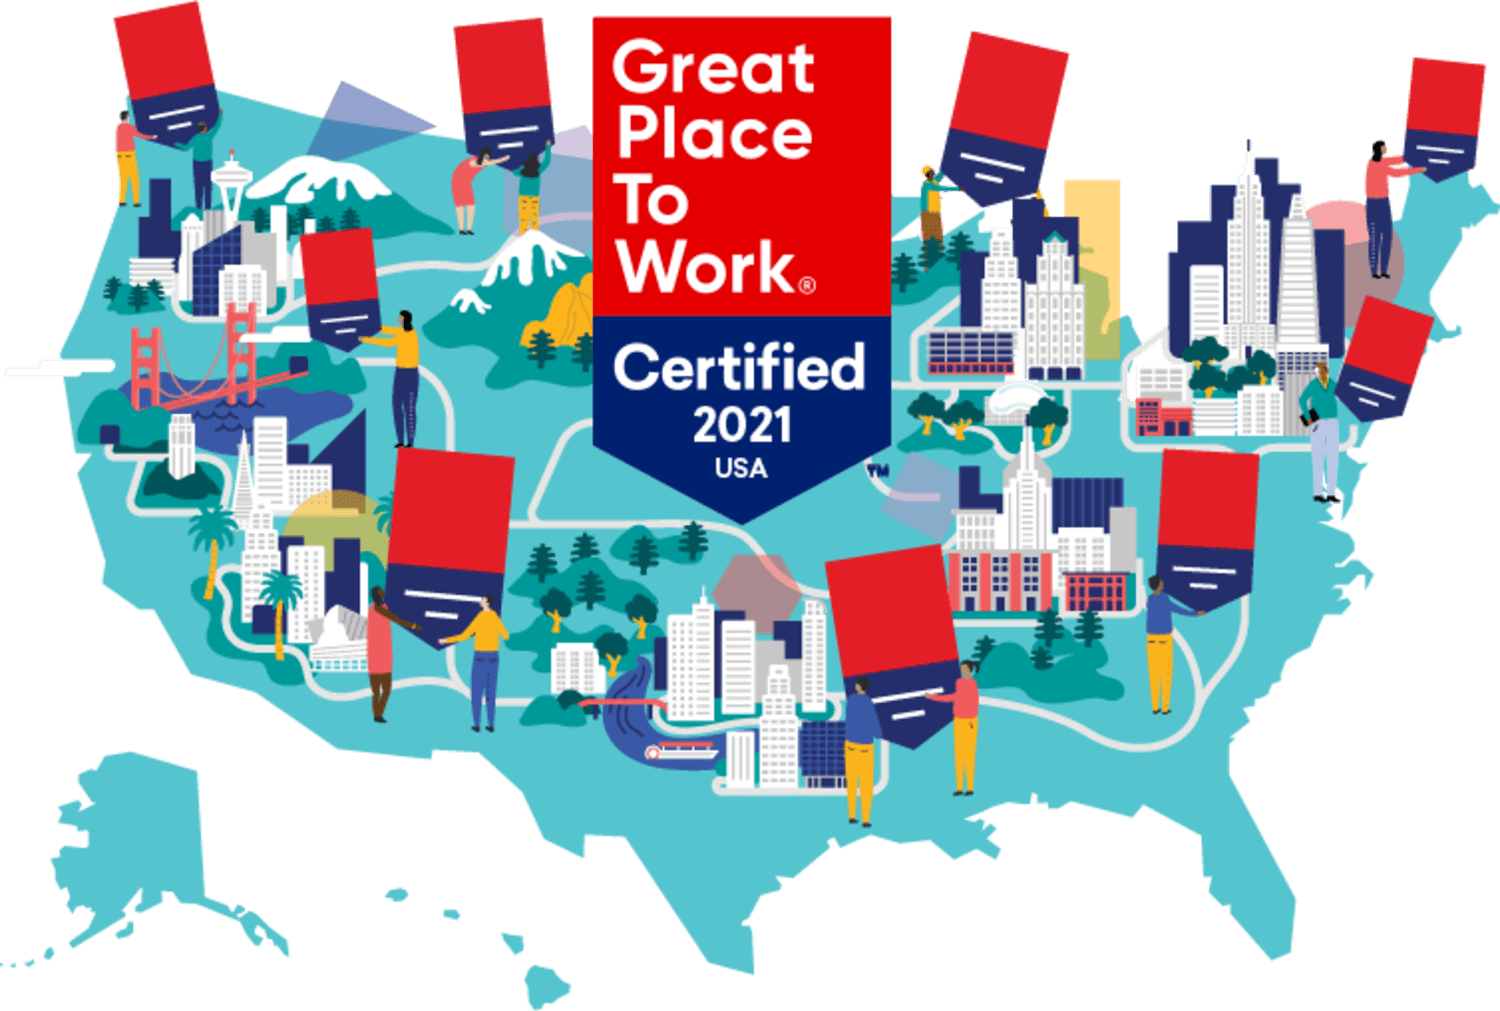 grreat-place-to-work-certification-map-illustration